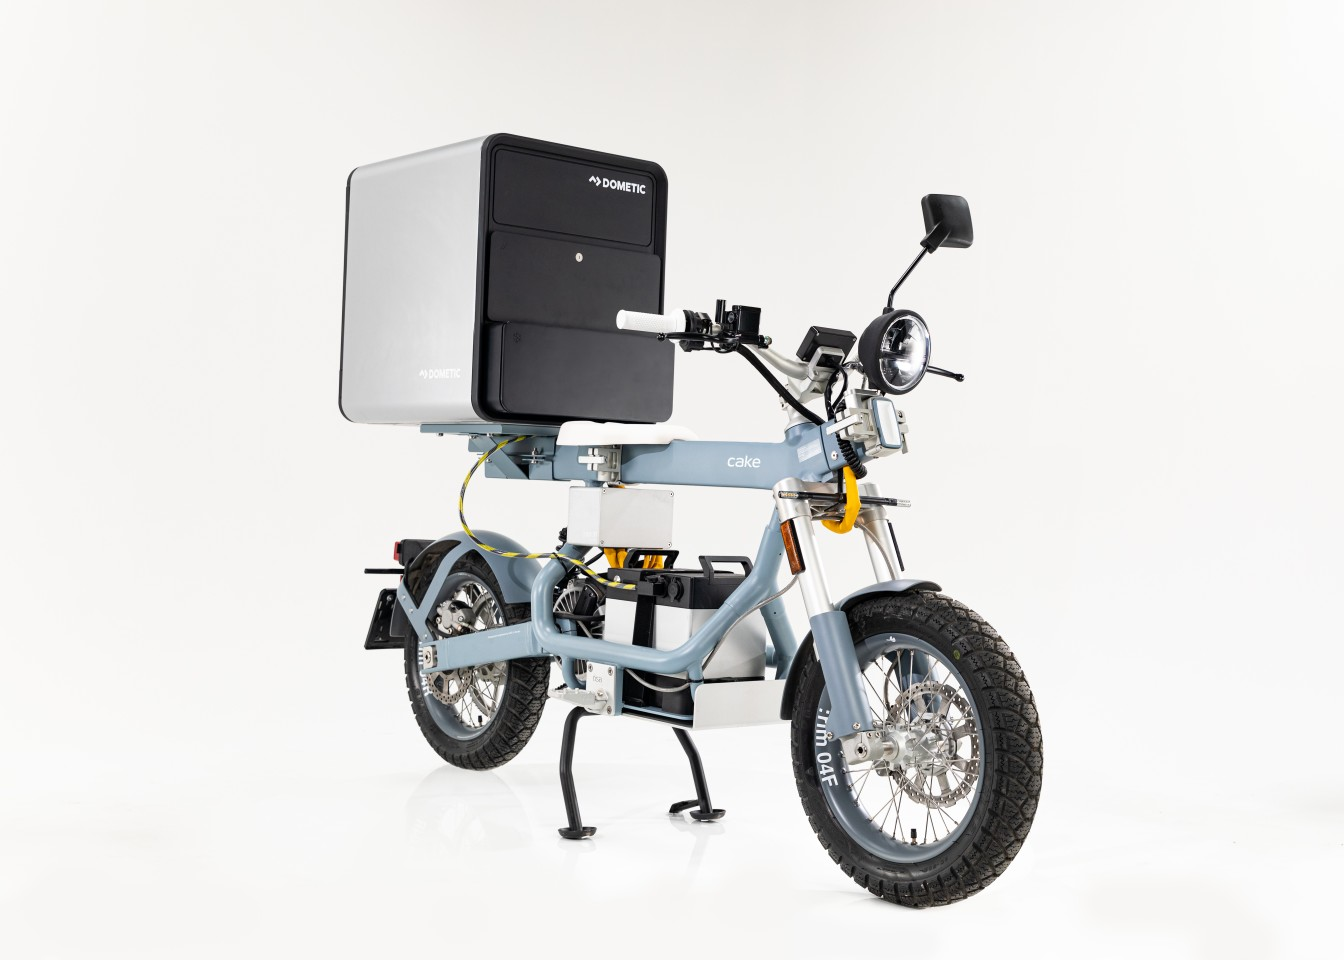 The Dometic Food Delivery Box is powered using the same battery as the Ösa electric utility moto it's mounted on